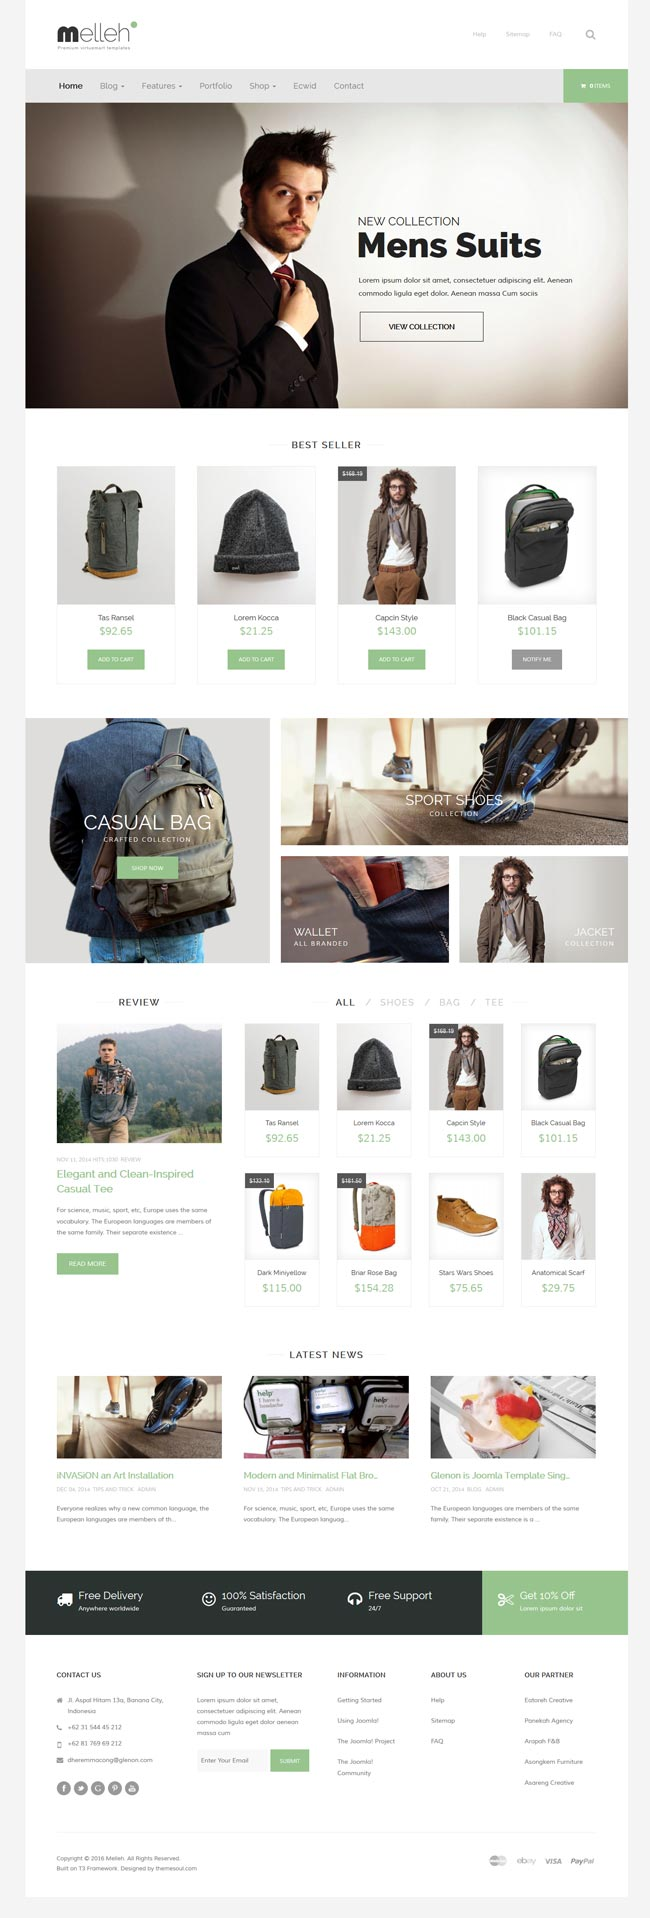 10 Best Joomla Ecommerce templates